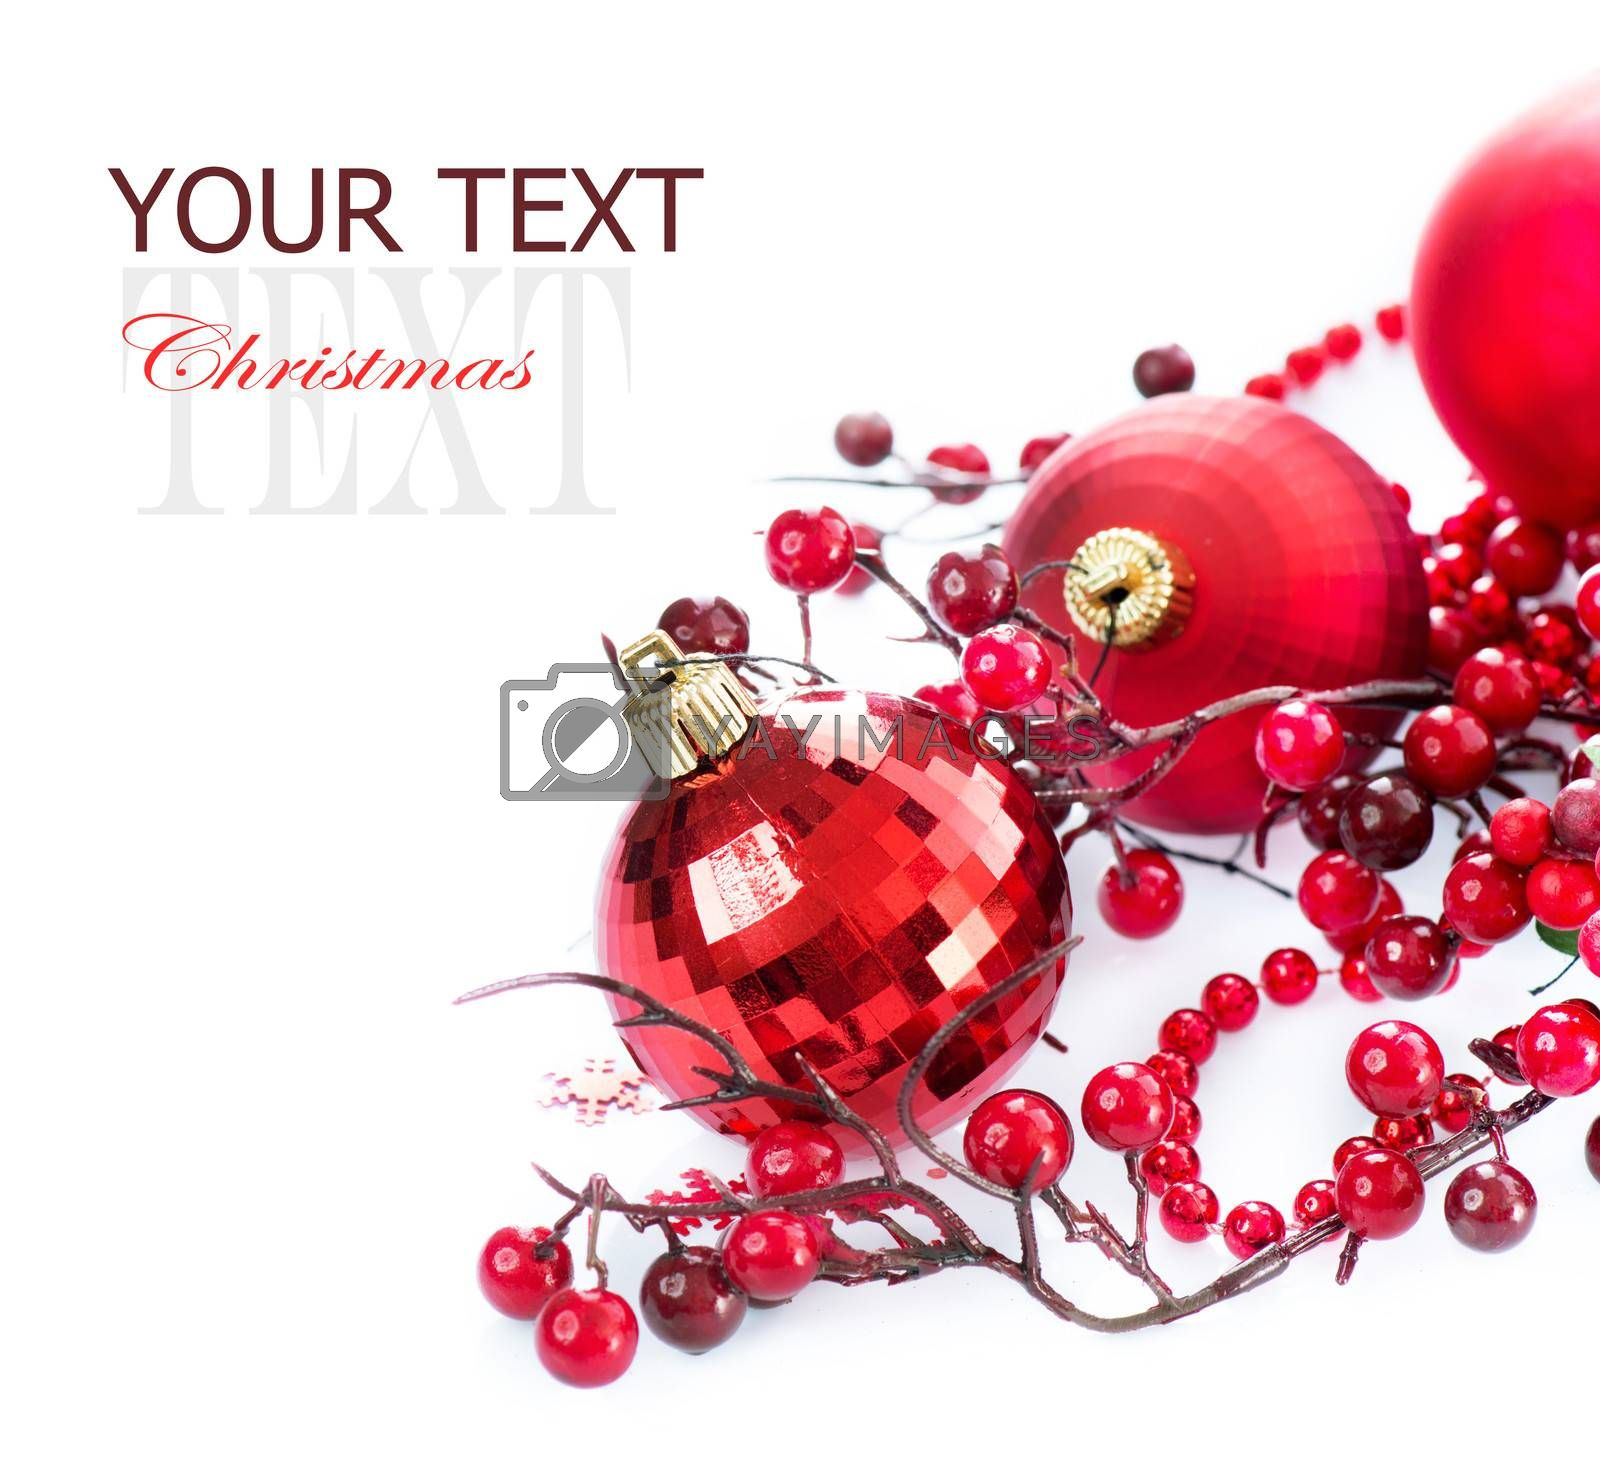 Christmas Baubles and Decoration isolated on White by SubbotinaA